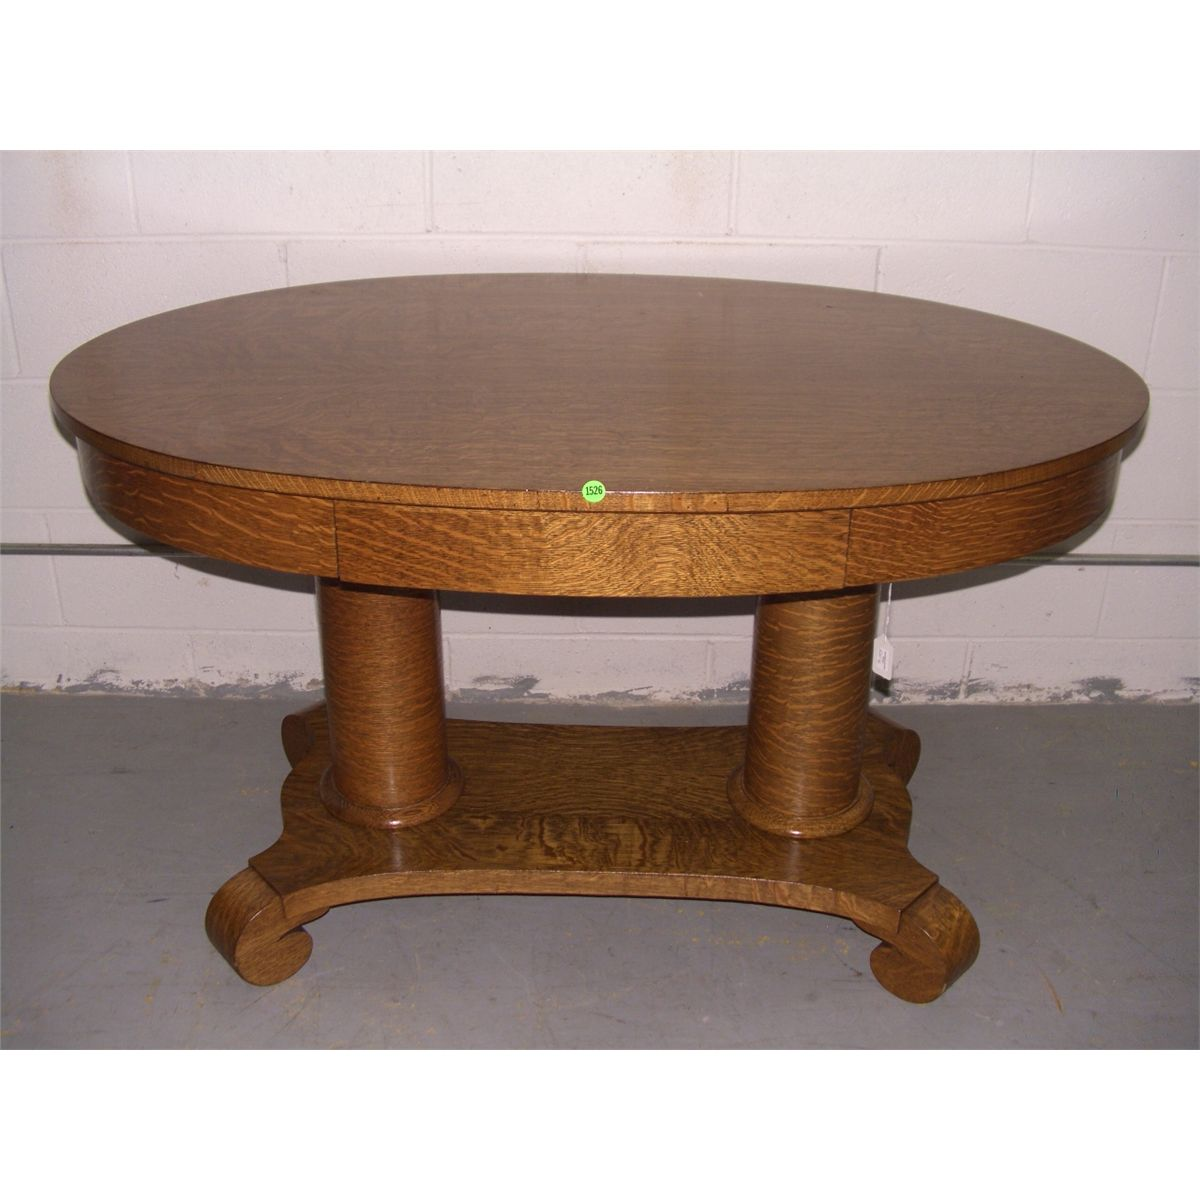 Beautiful American Oak Empire Oval Lamp Table With Drawer